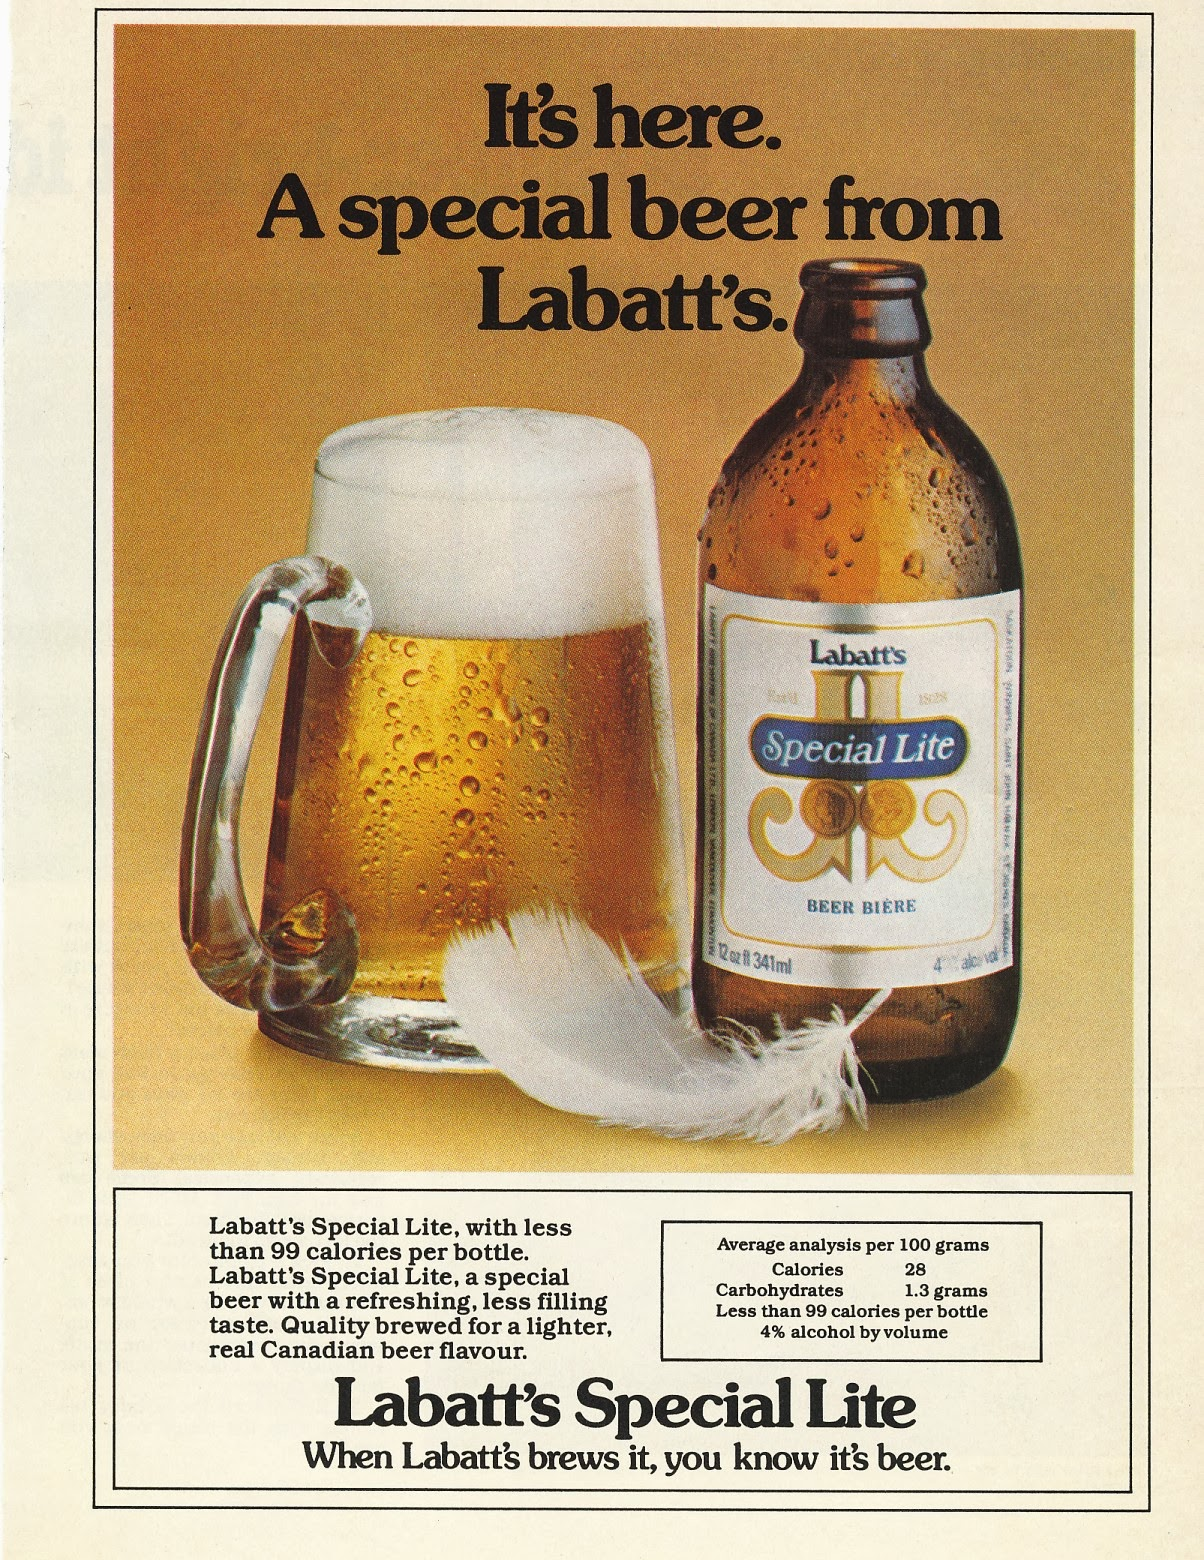 beer ads analysis Semiotics and beer advertising secondly the object of the ad is the vb beer itself a semiotic and linguistic analysis of beer and cider advertising.